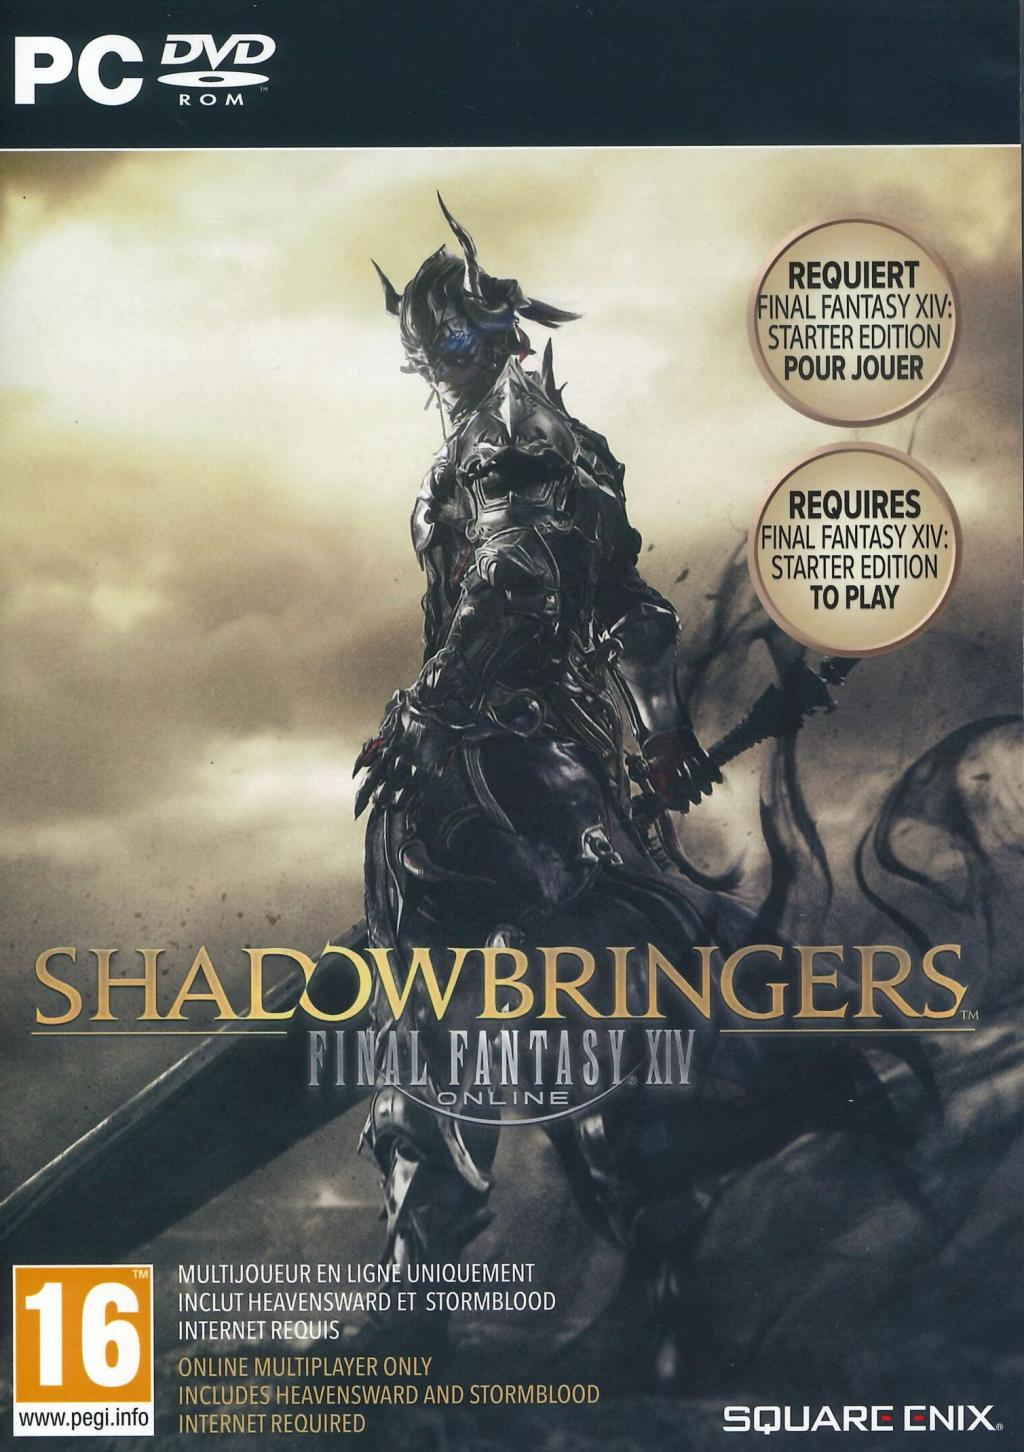 Final Fantasy XIV Shadowbringers_1